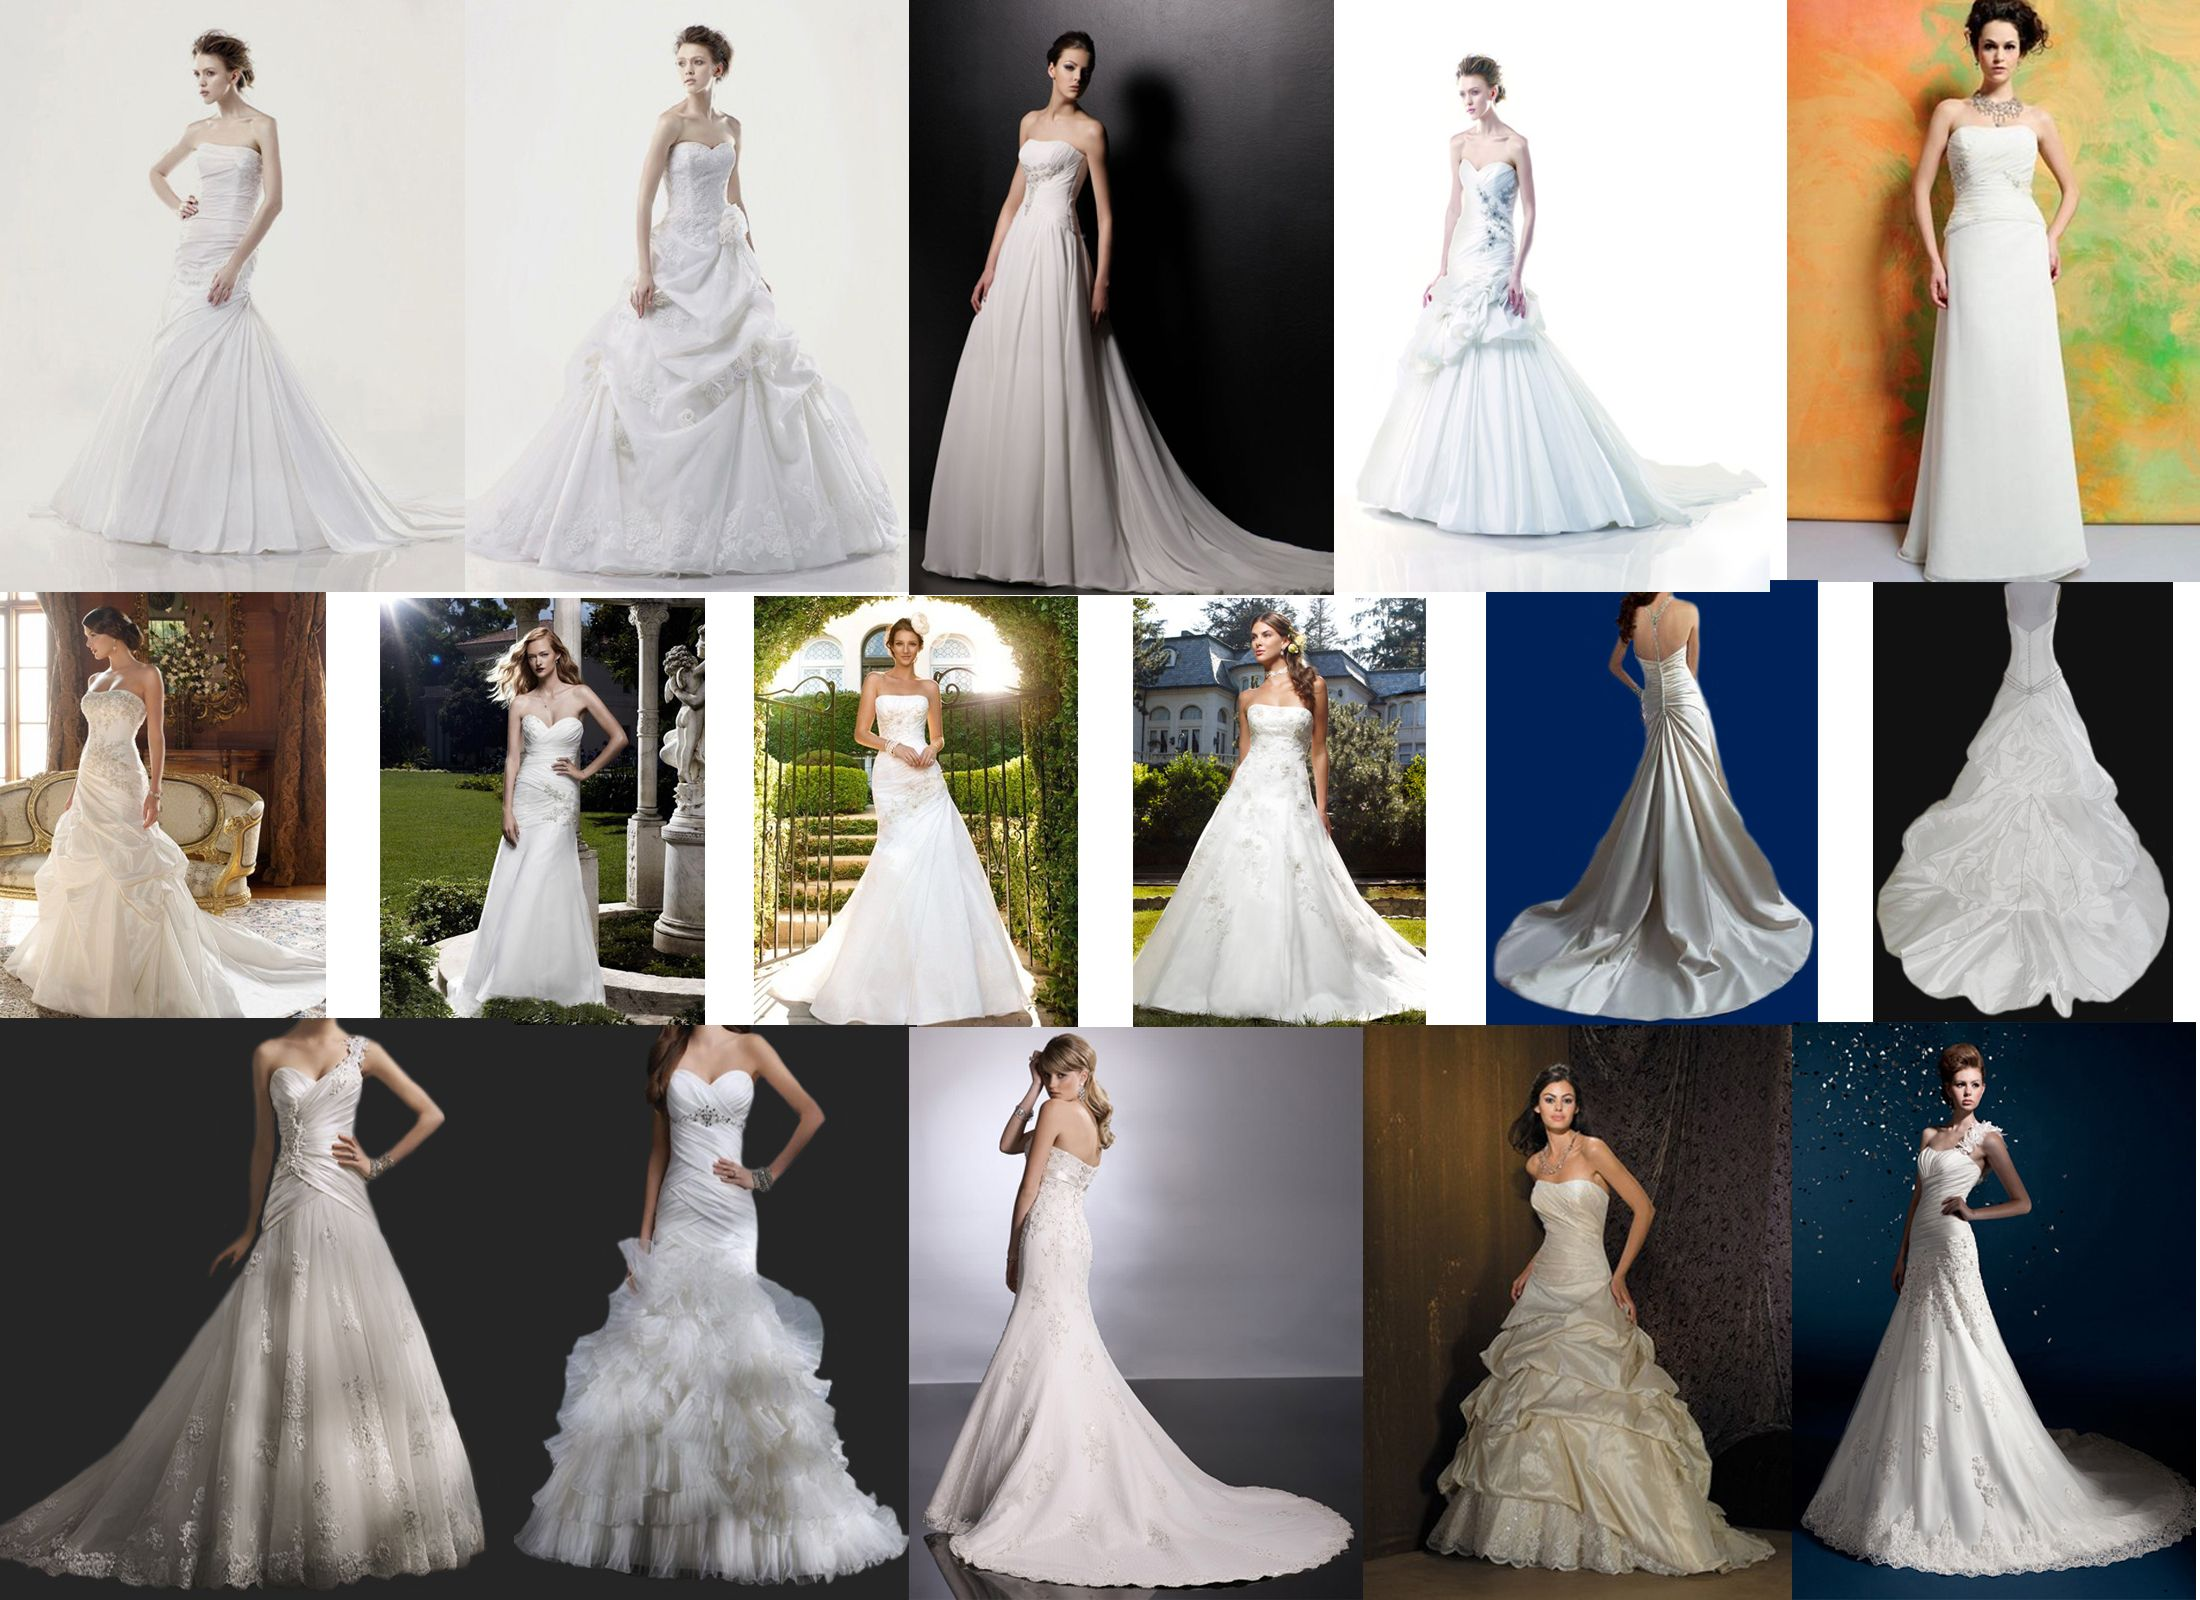 Please Share And Donate To Help Unprivileged Brides To Get Their Dream Wedding Gown Youcaring Com Bridal Gowns Bride Wedding Gowns